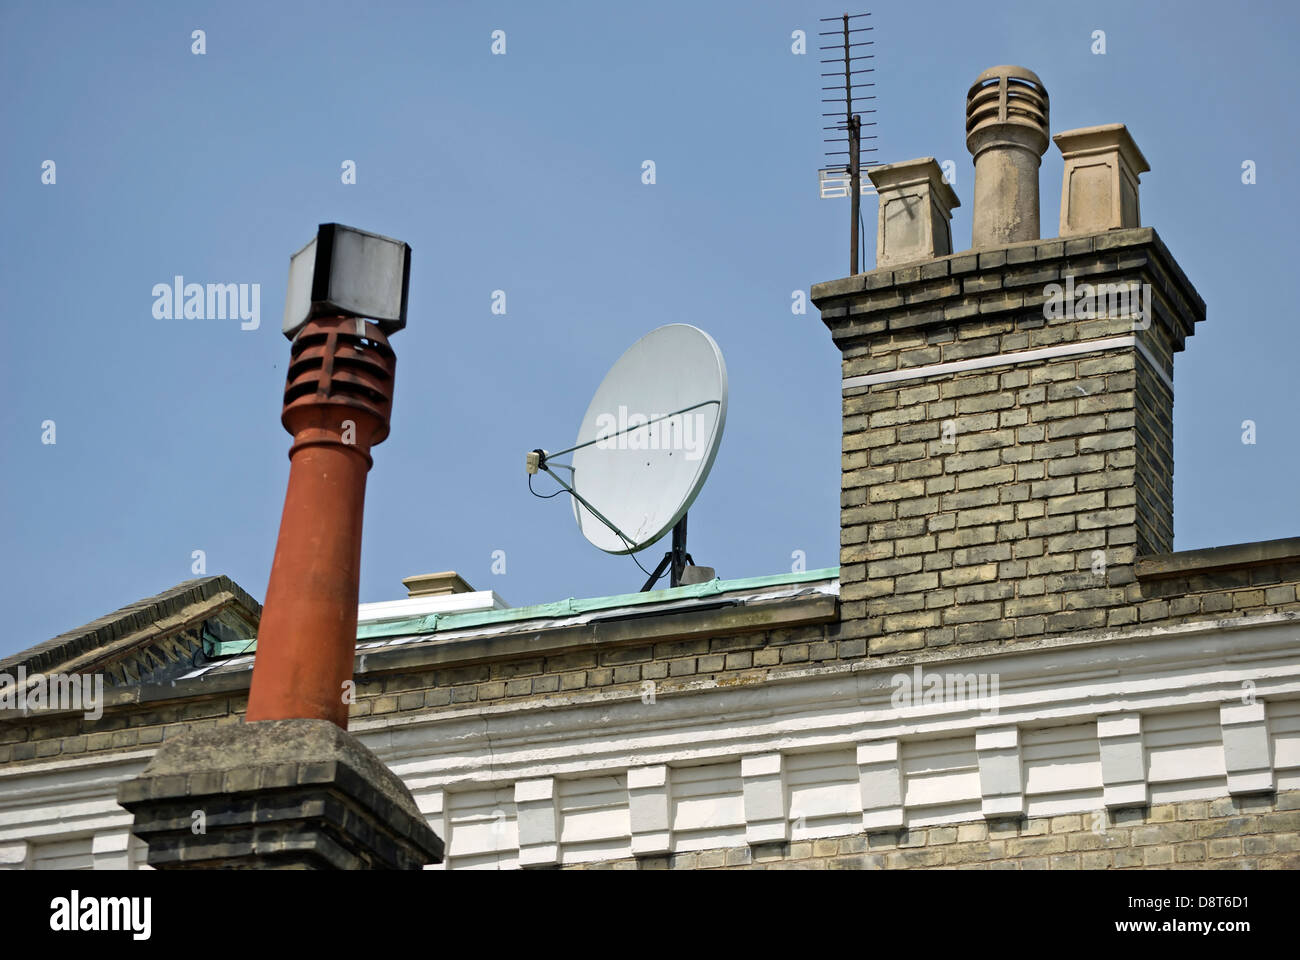 victorian rooftop with additions of chimney cowls, tv aerial and satellite dish, wimbledon, southwest london, england - Stock Image